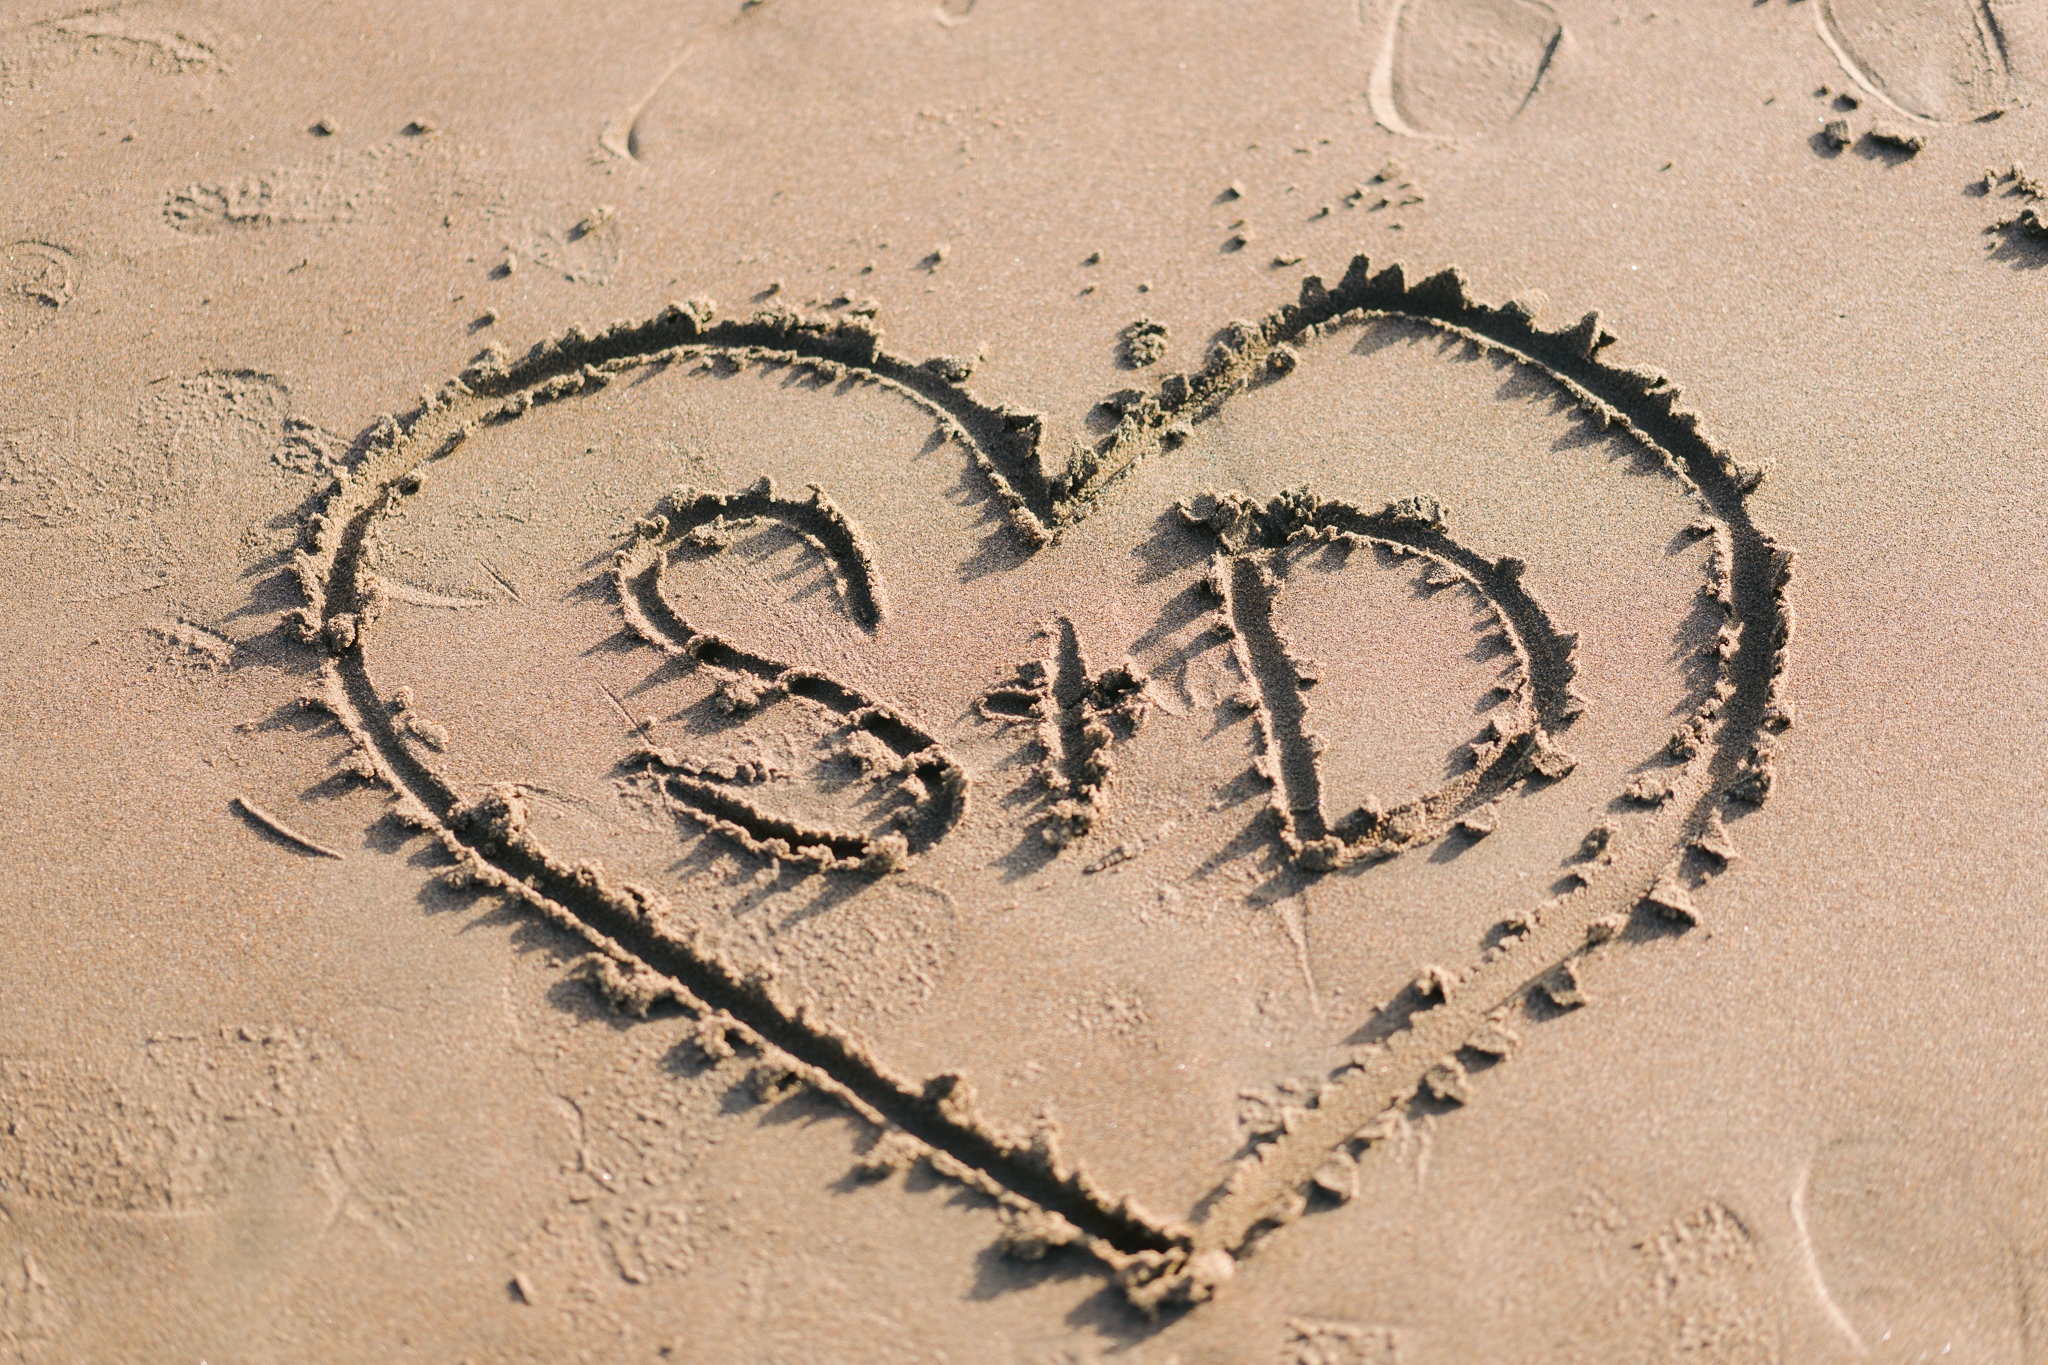 Beach engagement picture with initials S + D drawn in the sand with a heart drawn around them.